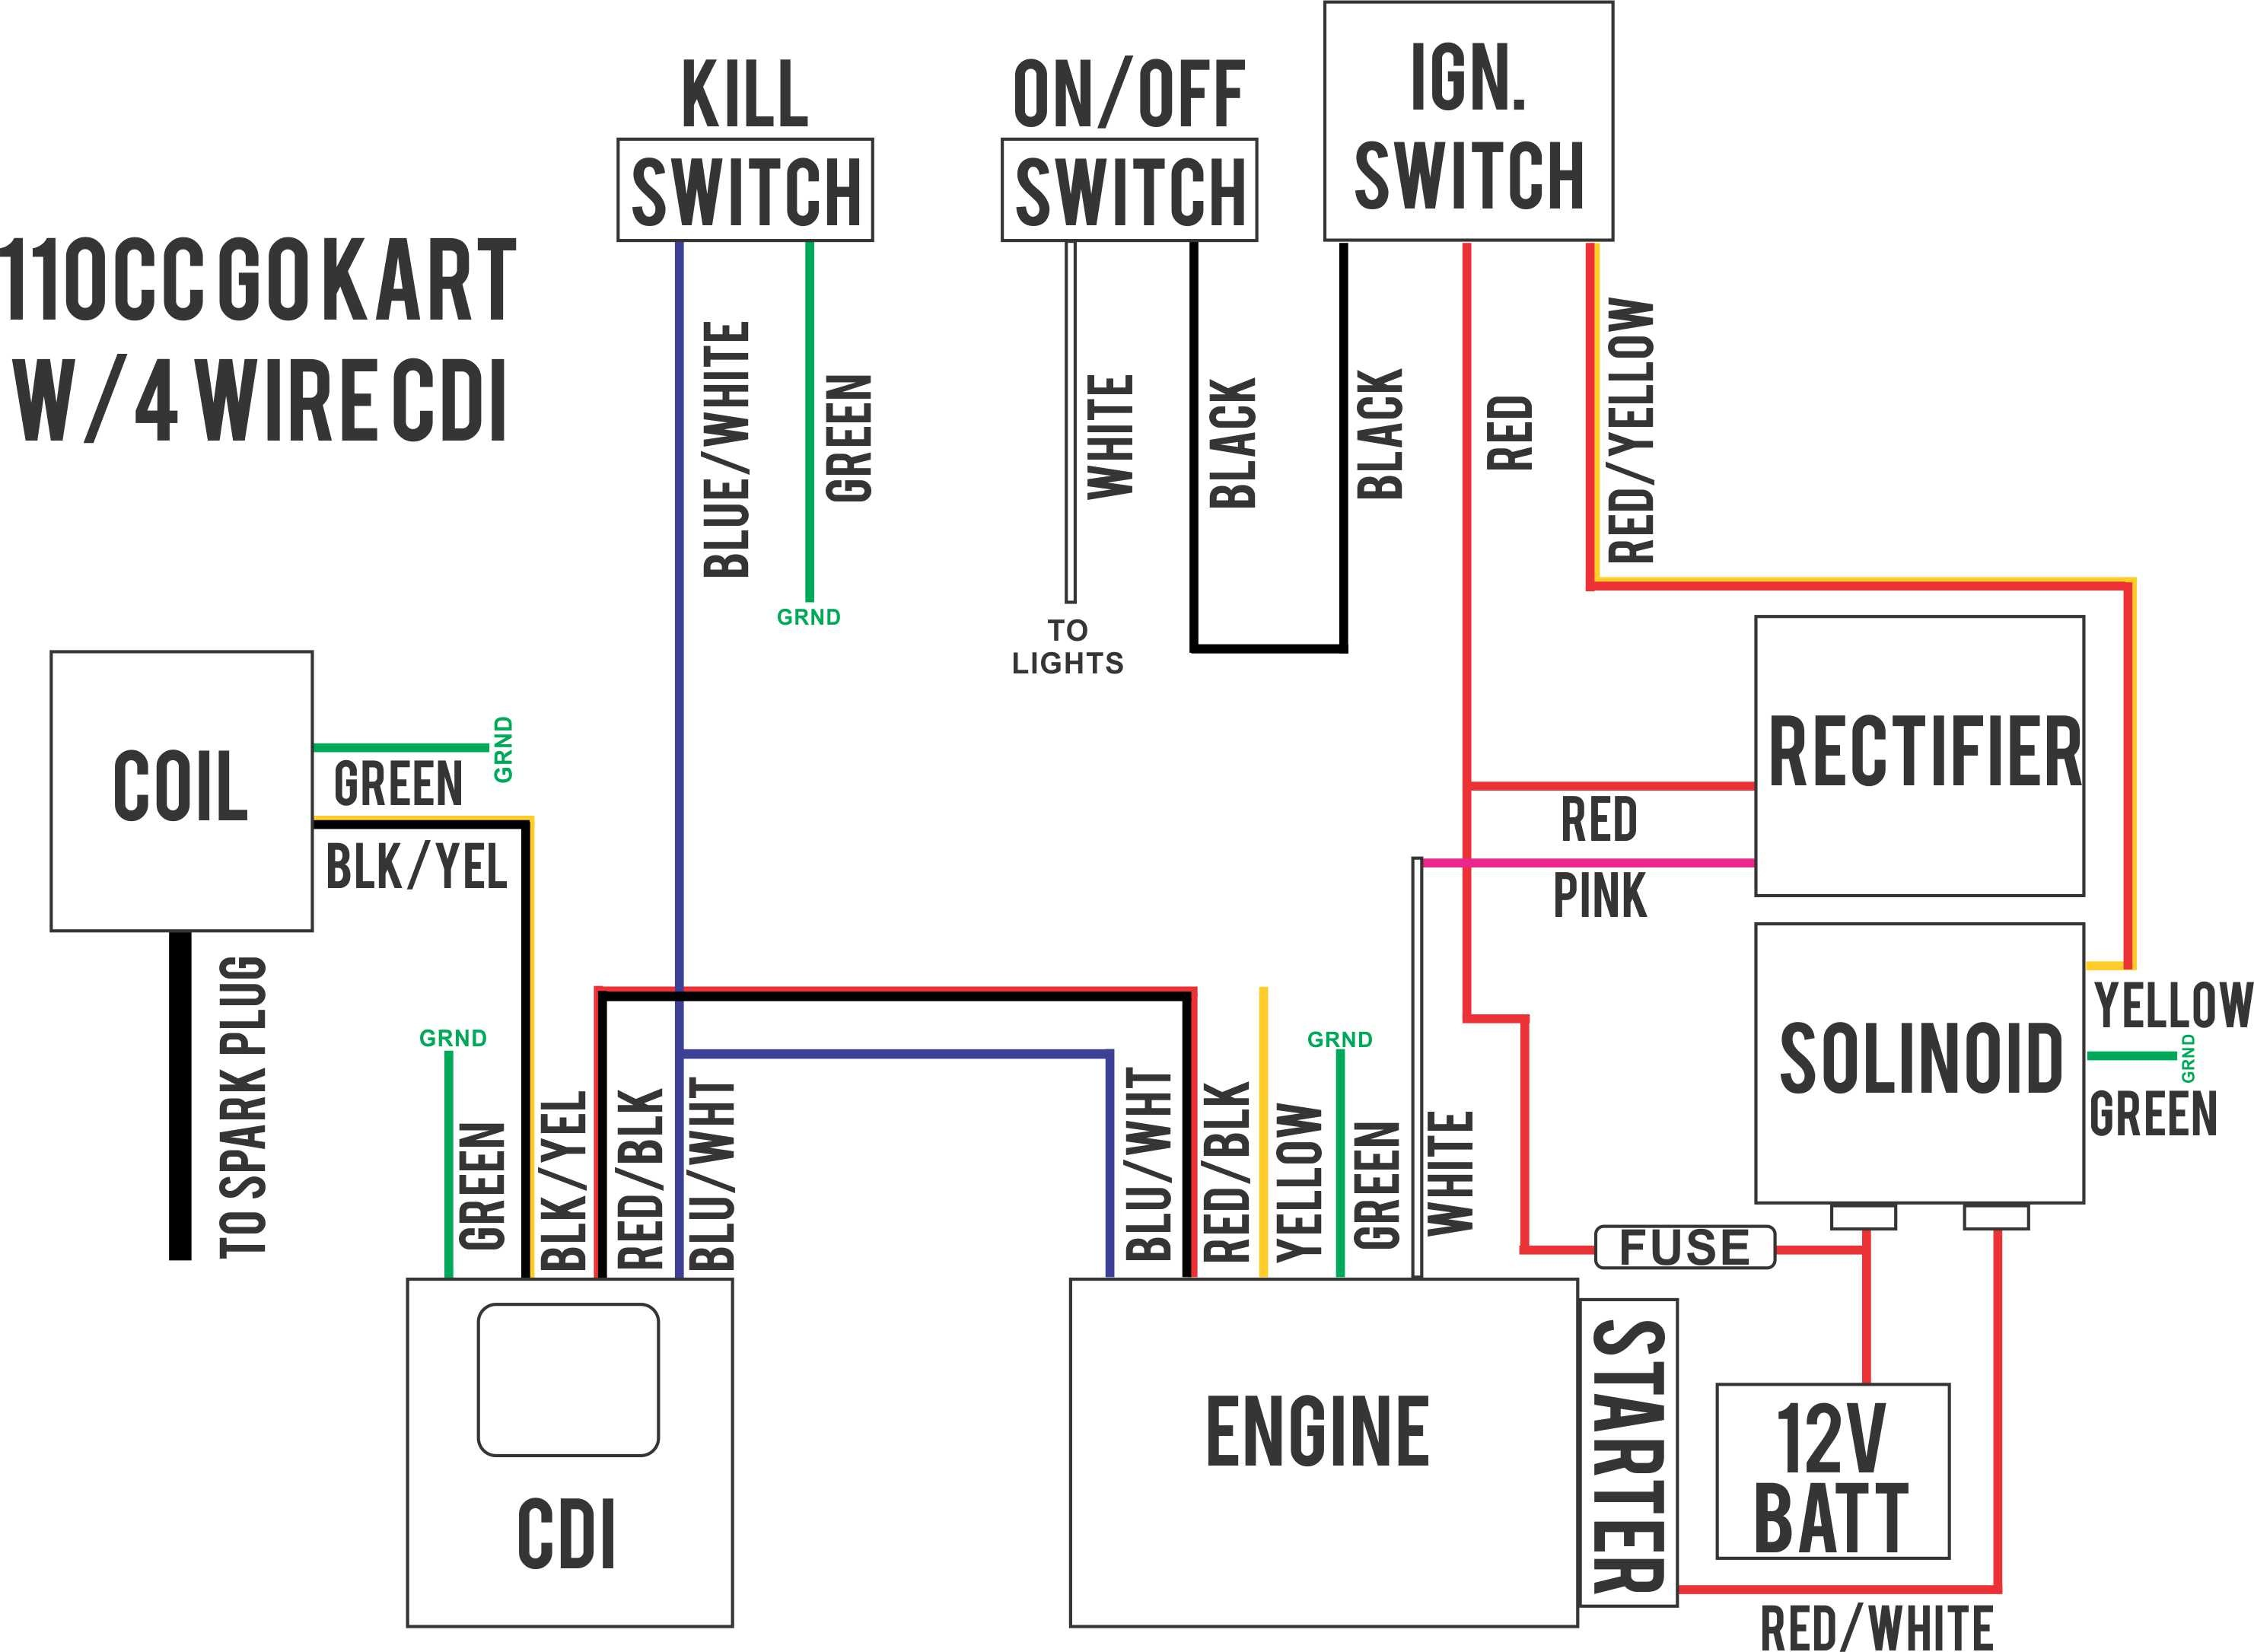 4 pin ignition wiring wiring diagram schematics2008 suzuki ignition wiring wiring diagram schematics 4 pin ignition coil wiring 4 pin ignition wiring